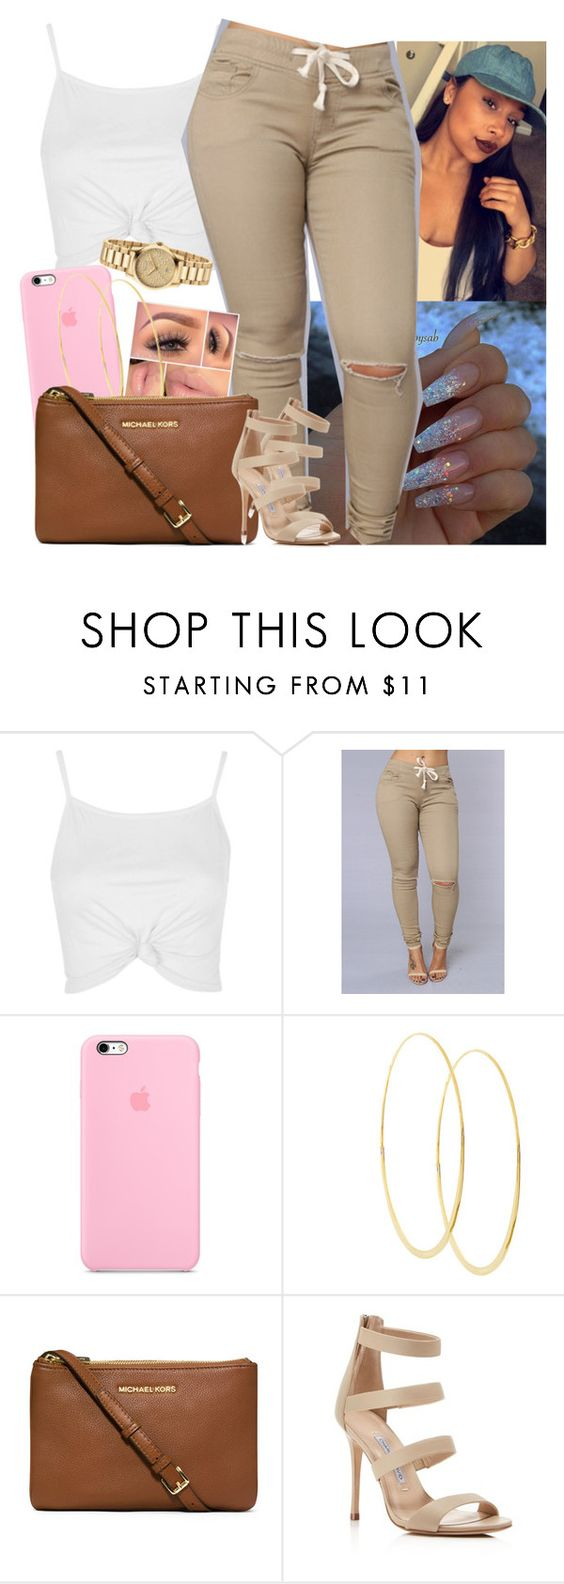 Don't stop get it get it  by saucinonyou999 on Polyvore featuring Topshop, Charles David, MICHAEL Michael Kors, Gucci and Lana